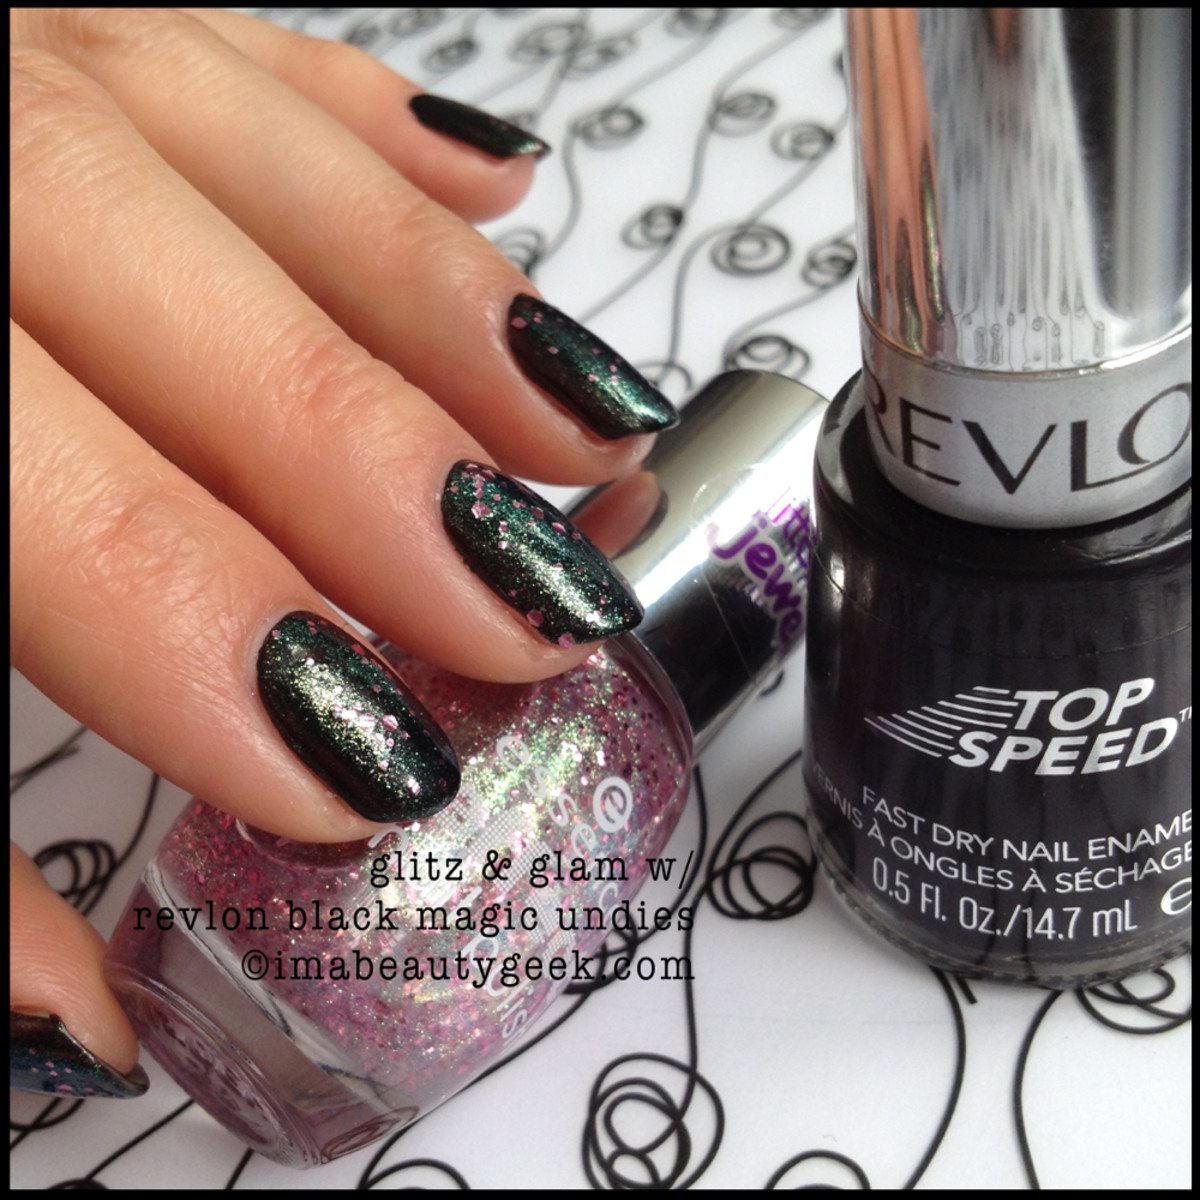 Revlon Black Magic: Essence Polish: New Effects & Updates (So Much Fun For So